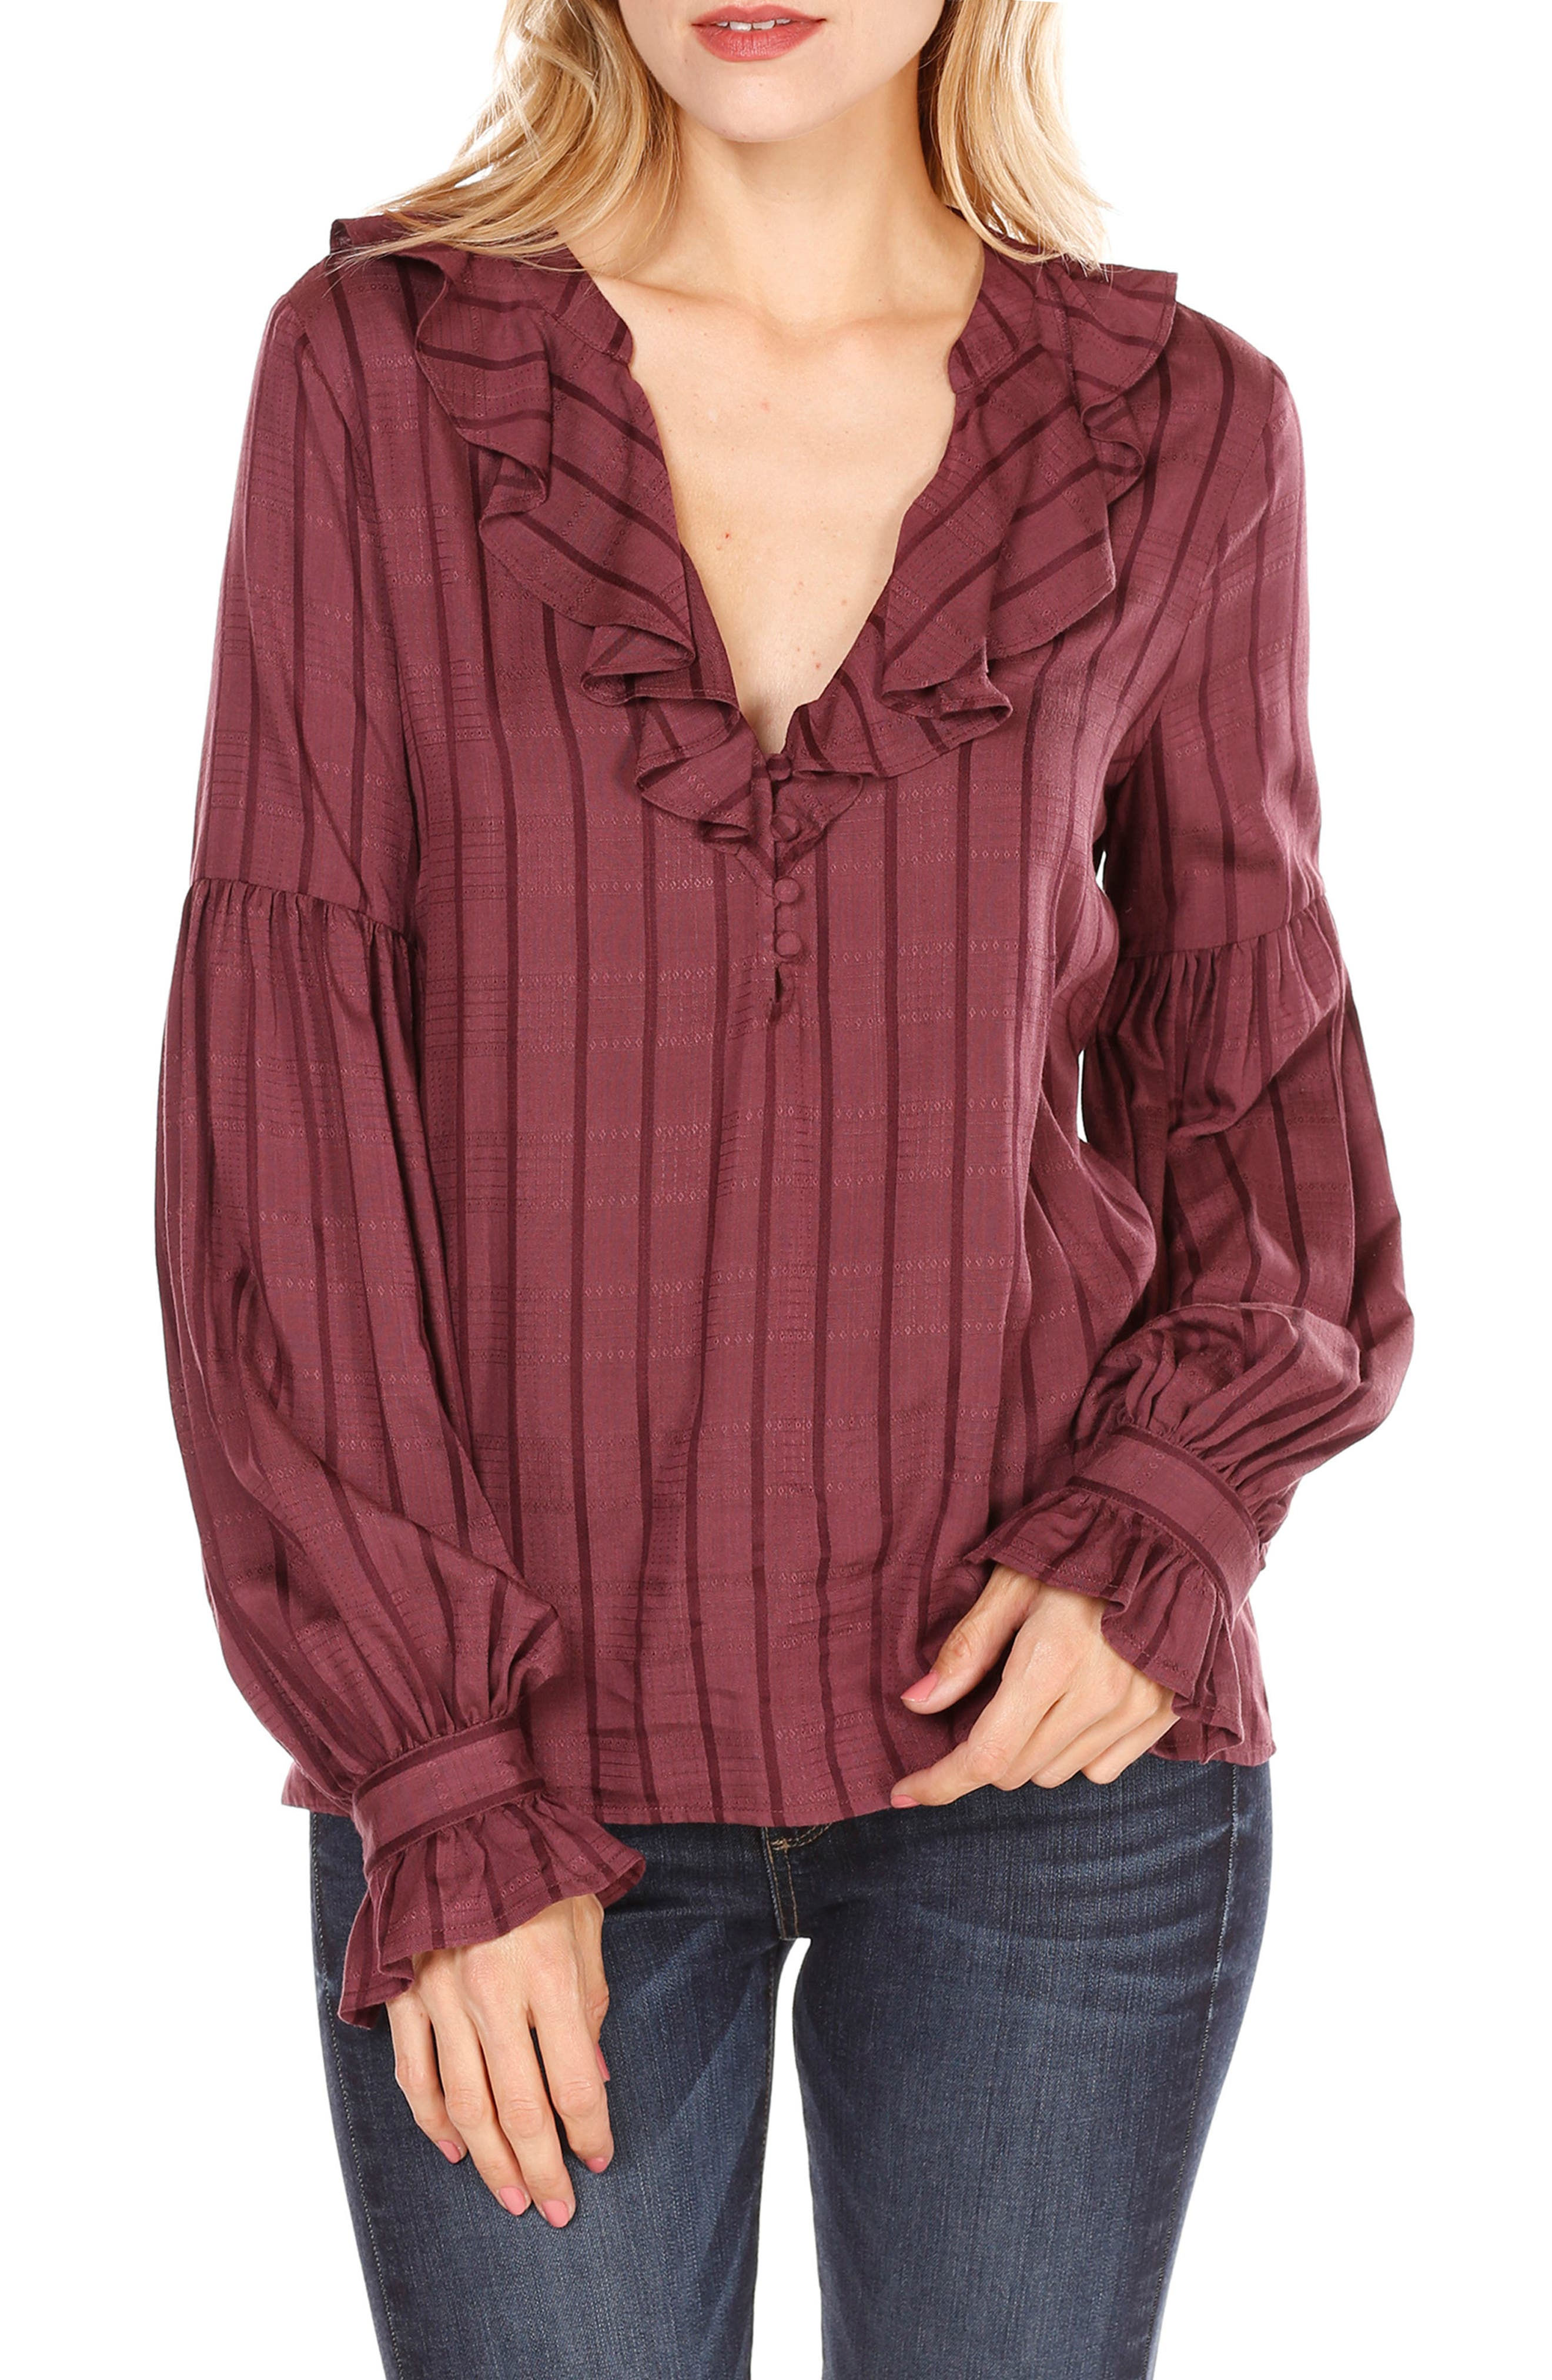 Russo Ruffle Blouse,                         Main,                         color,